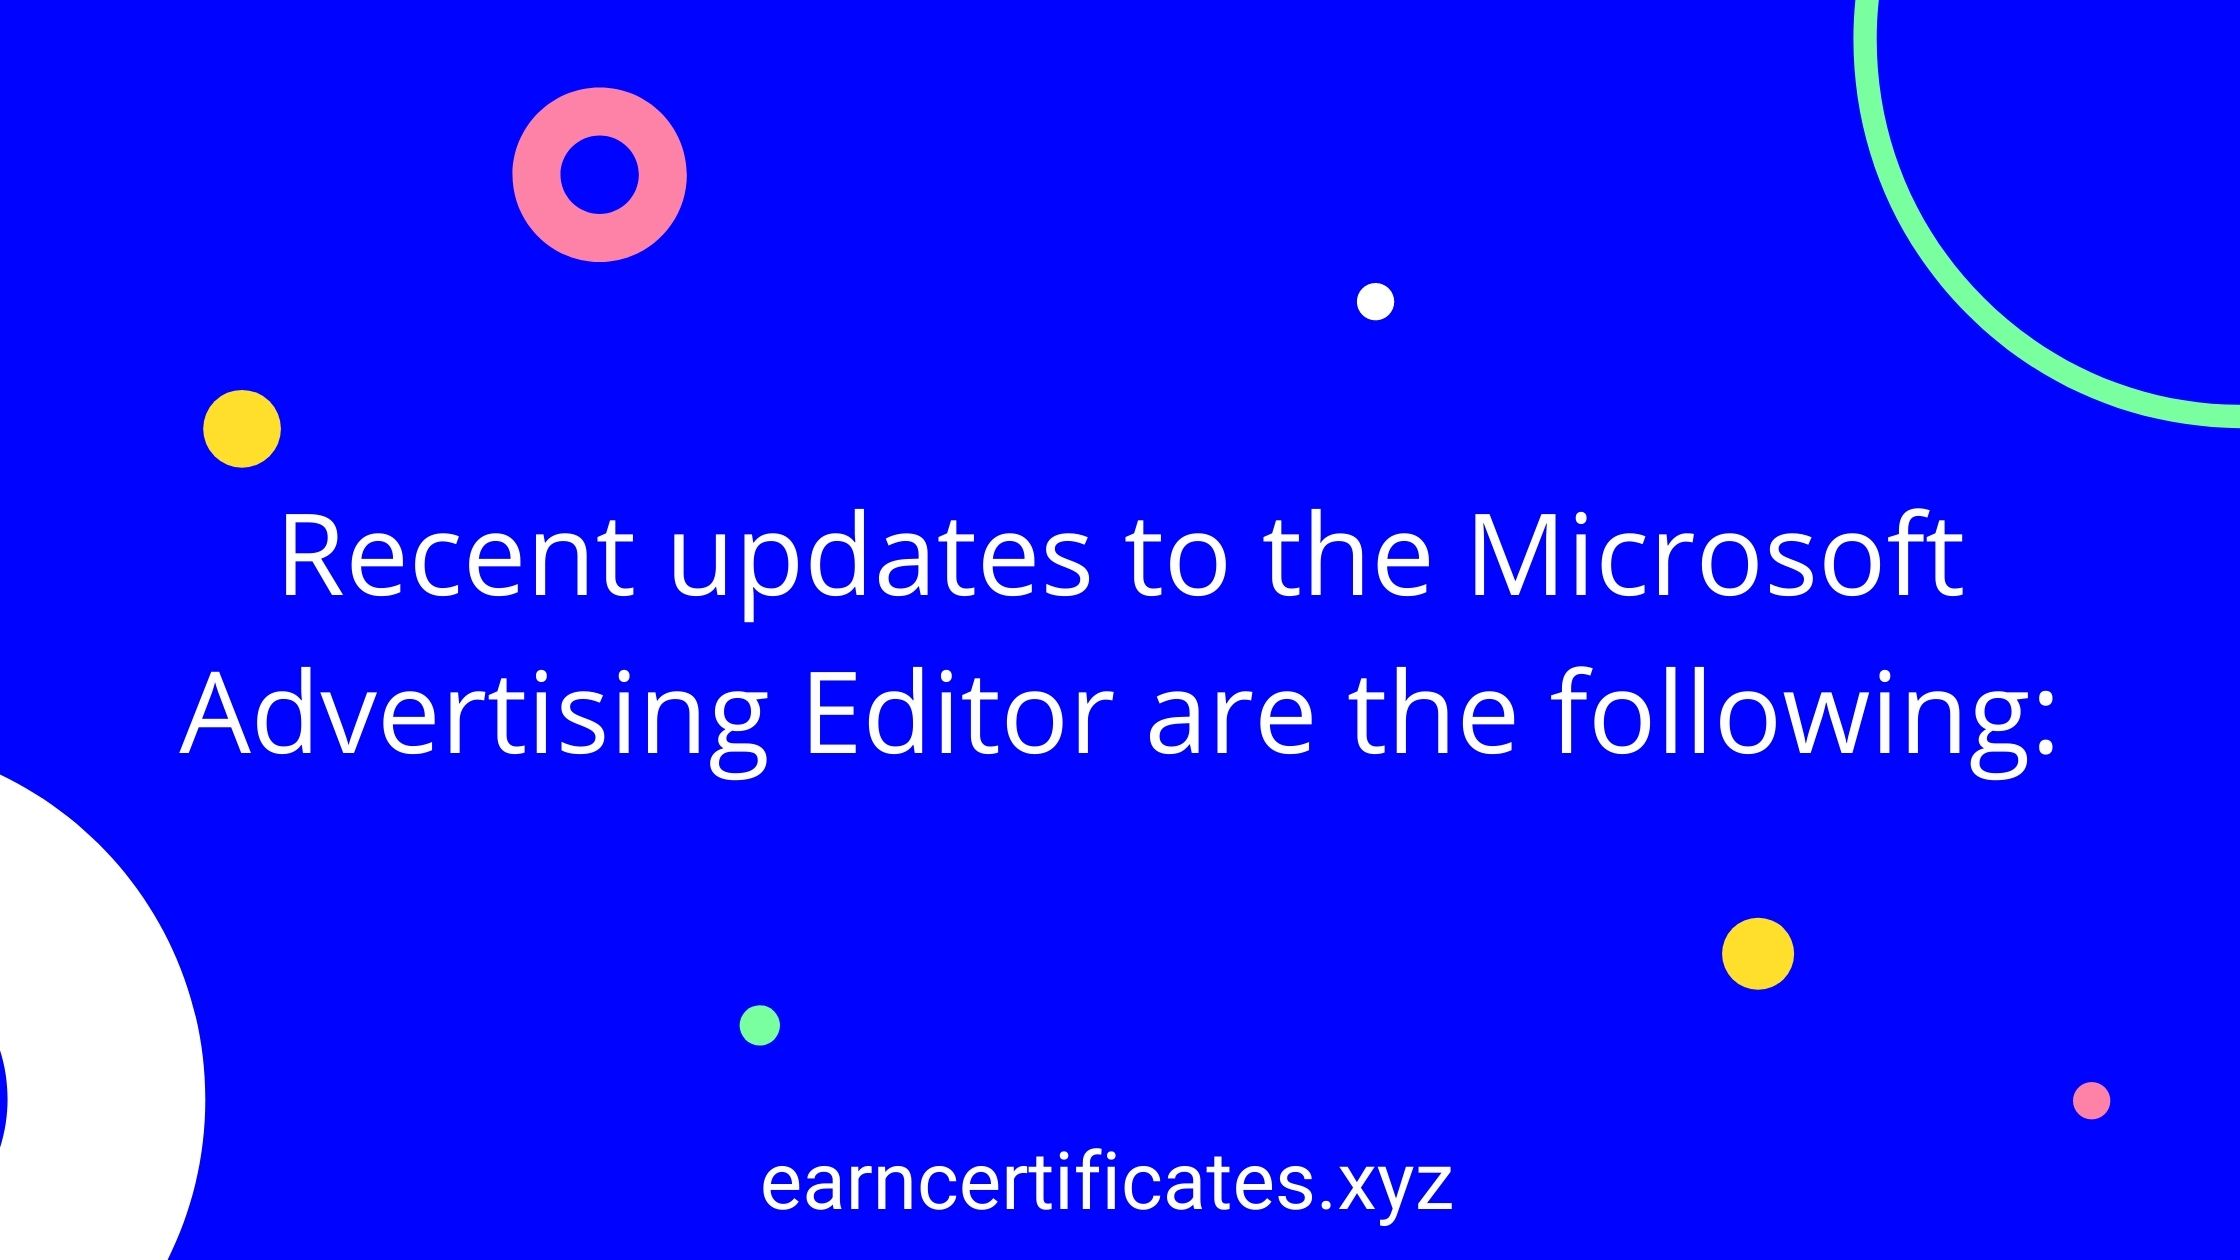 Recent updates to the Microsoft Advertising Editor are the following: